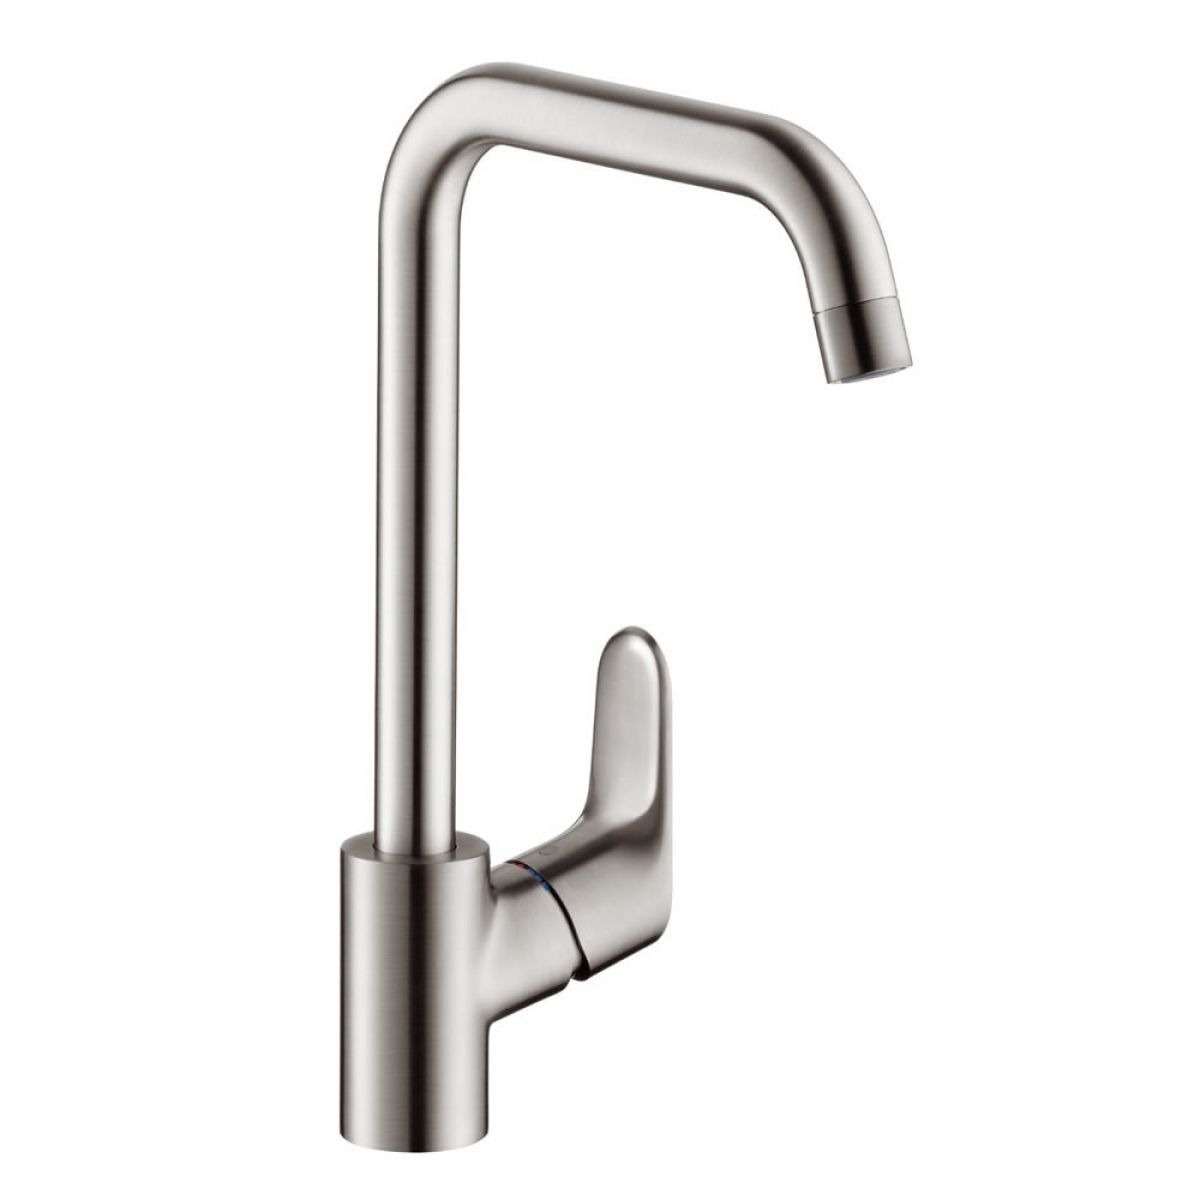 hansgrohe focus 260 kitchen mixer tap uk bathrooms. Black Bedroom Furniture Sets. Home Design Ideas